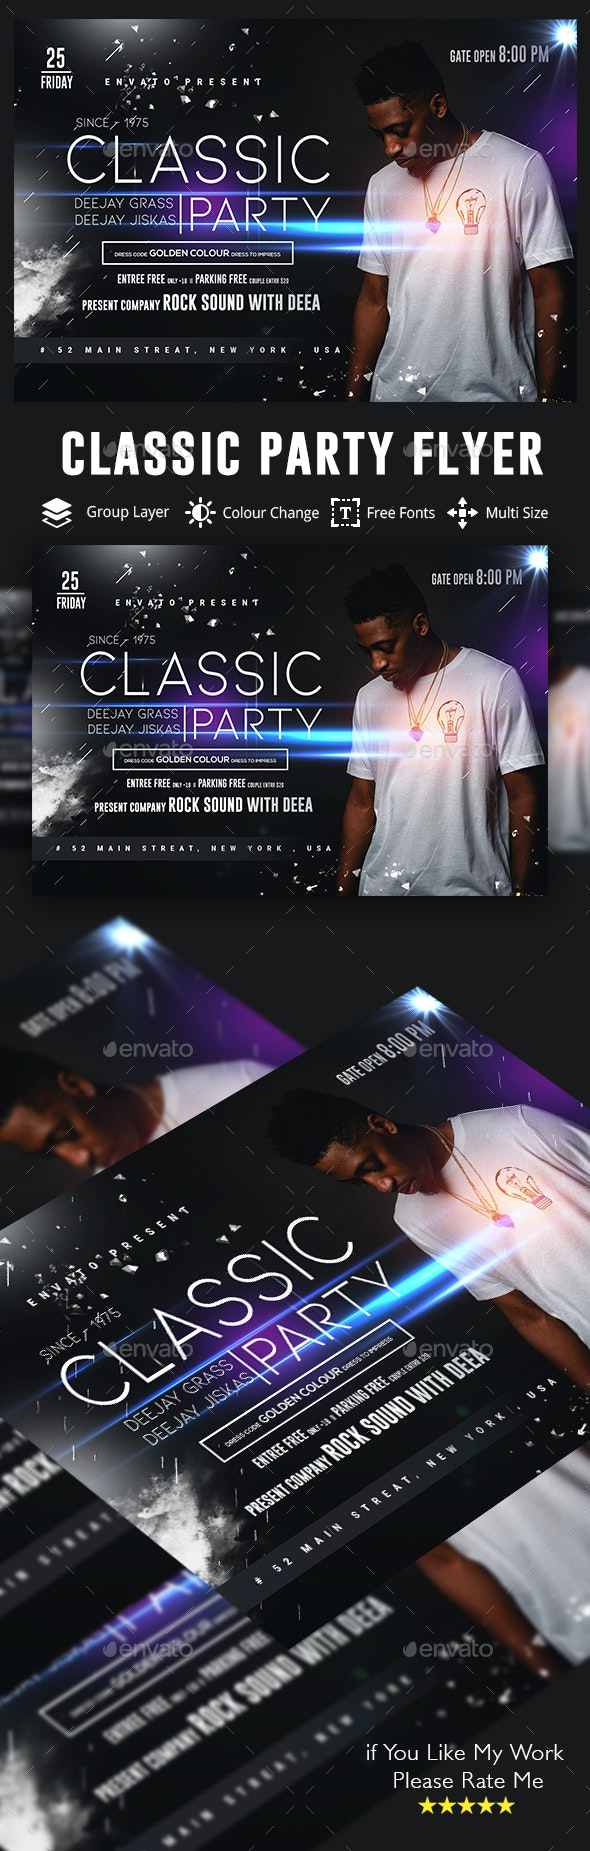 Live Guest Dj Night Flyer - Clubs & Parties Events